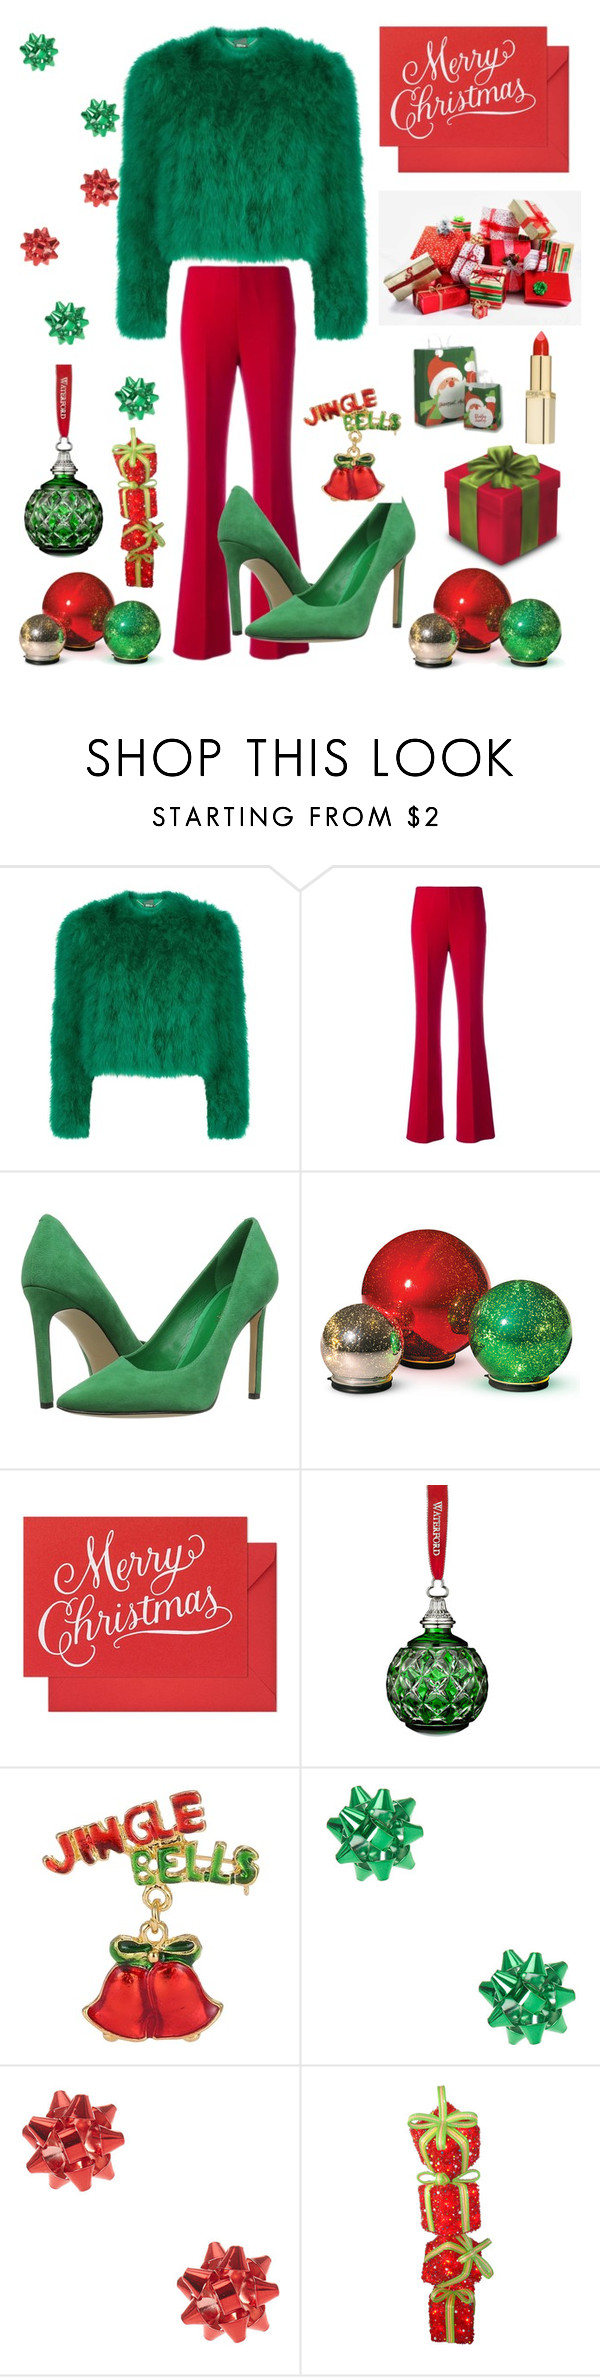 """""""Merry Christmas to all my polyvore friends! xoxo ♡♡♡"""" by kotnourka ❤ liked on Polyvore featuring Alexander McQueen, Theory, Nine West, Improvements, Sugar Paper, Waterford, claire's and L'Oréal Paris"""